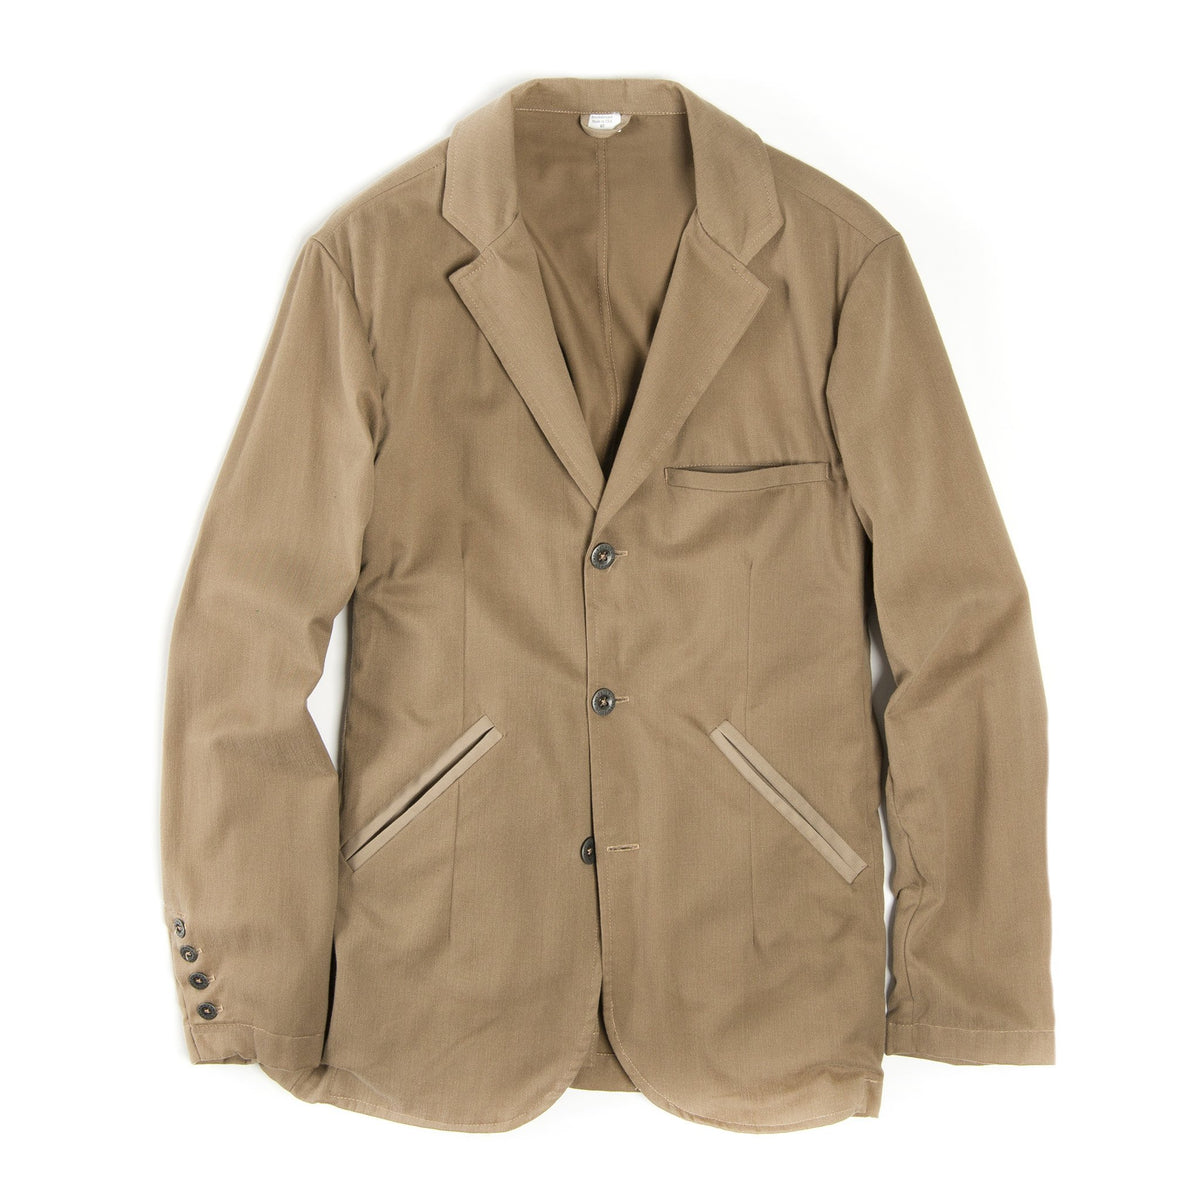 Dash Jacket - Tan